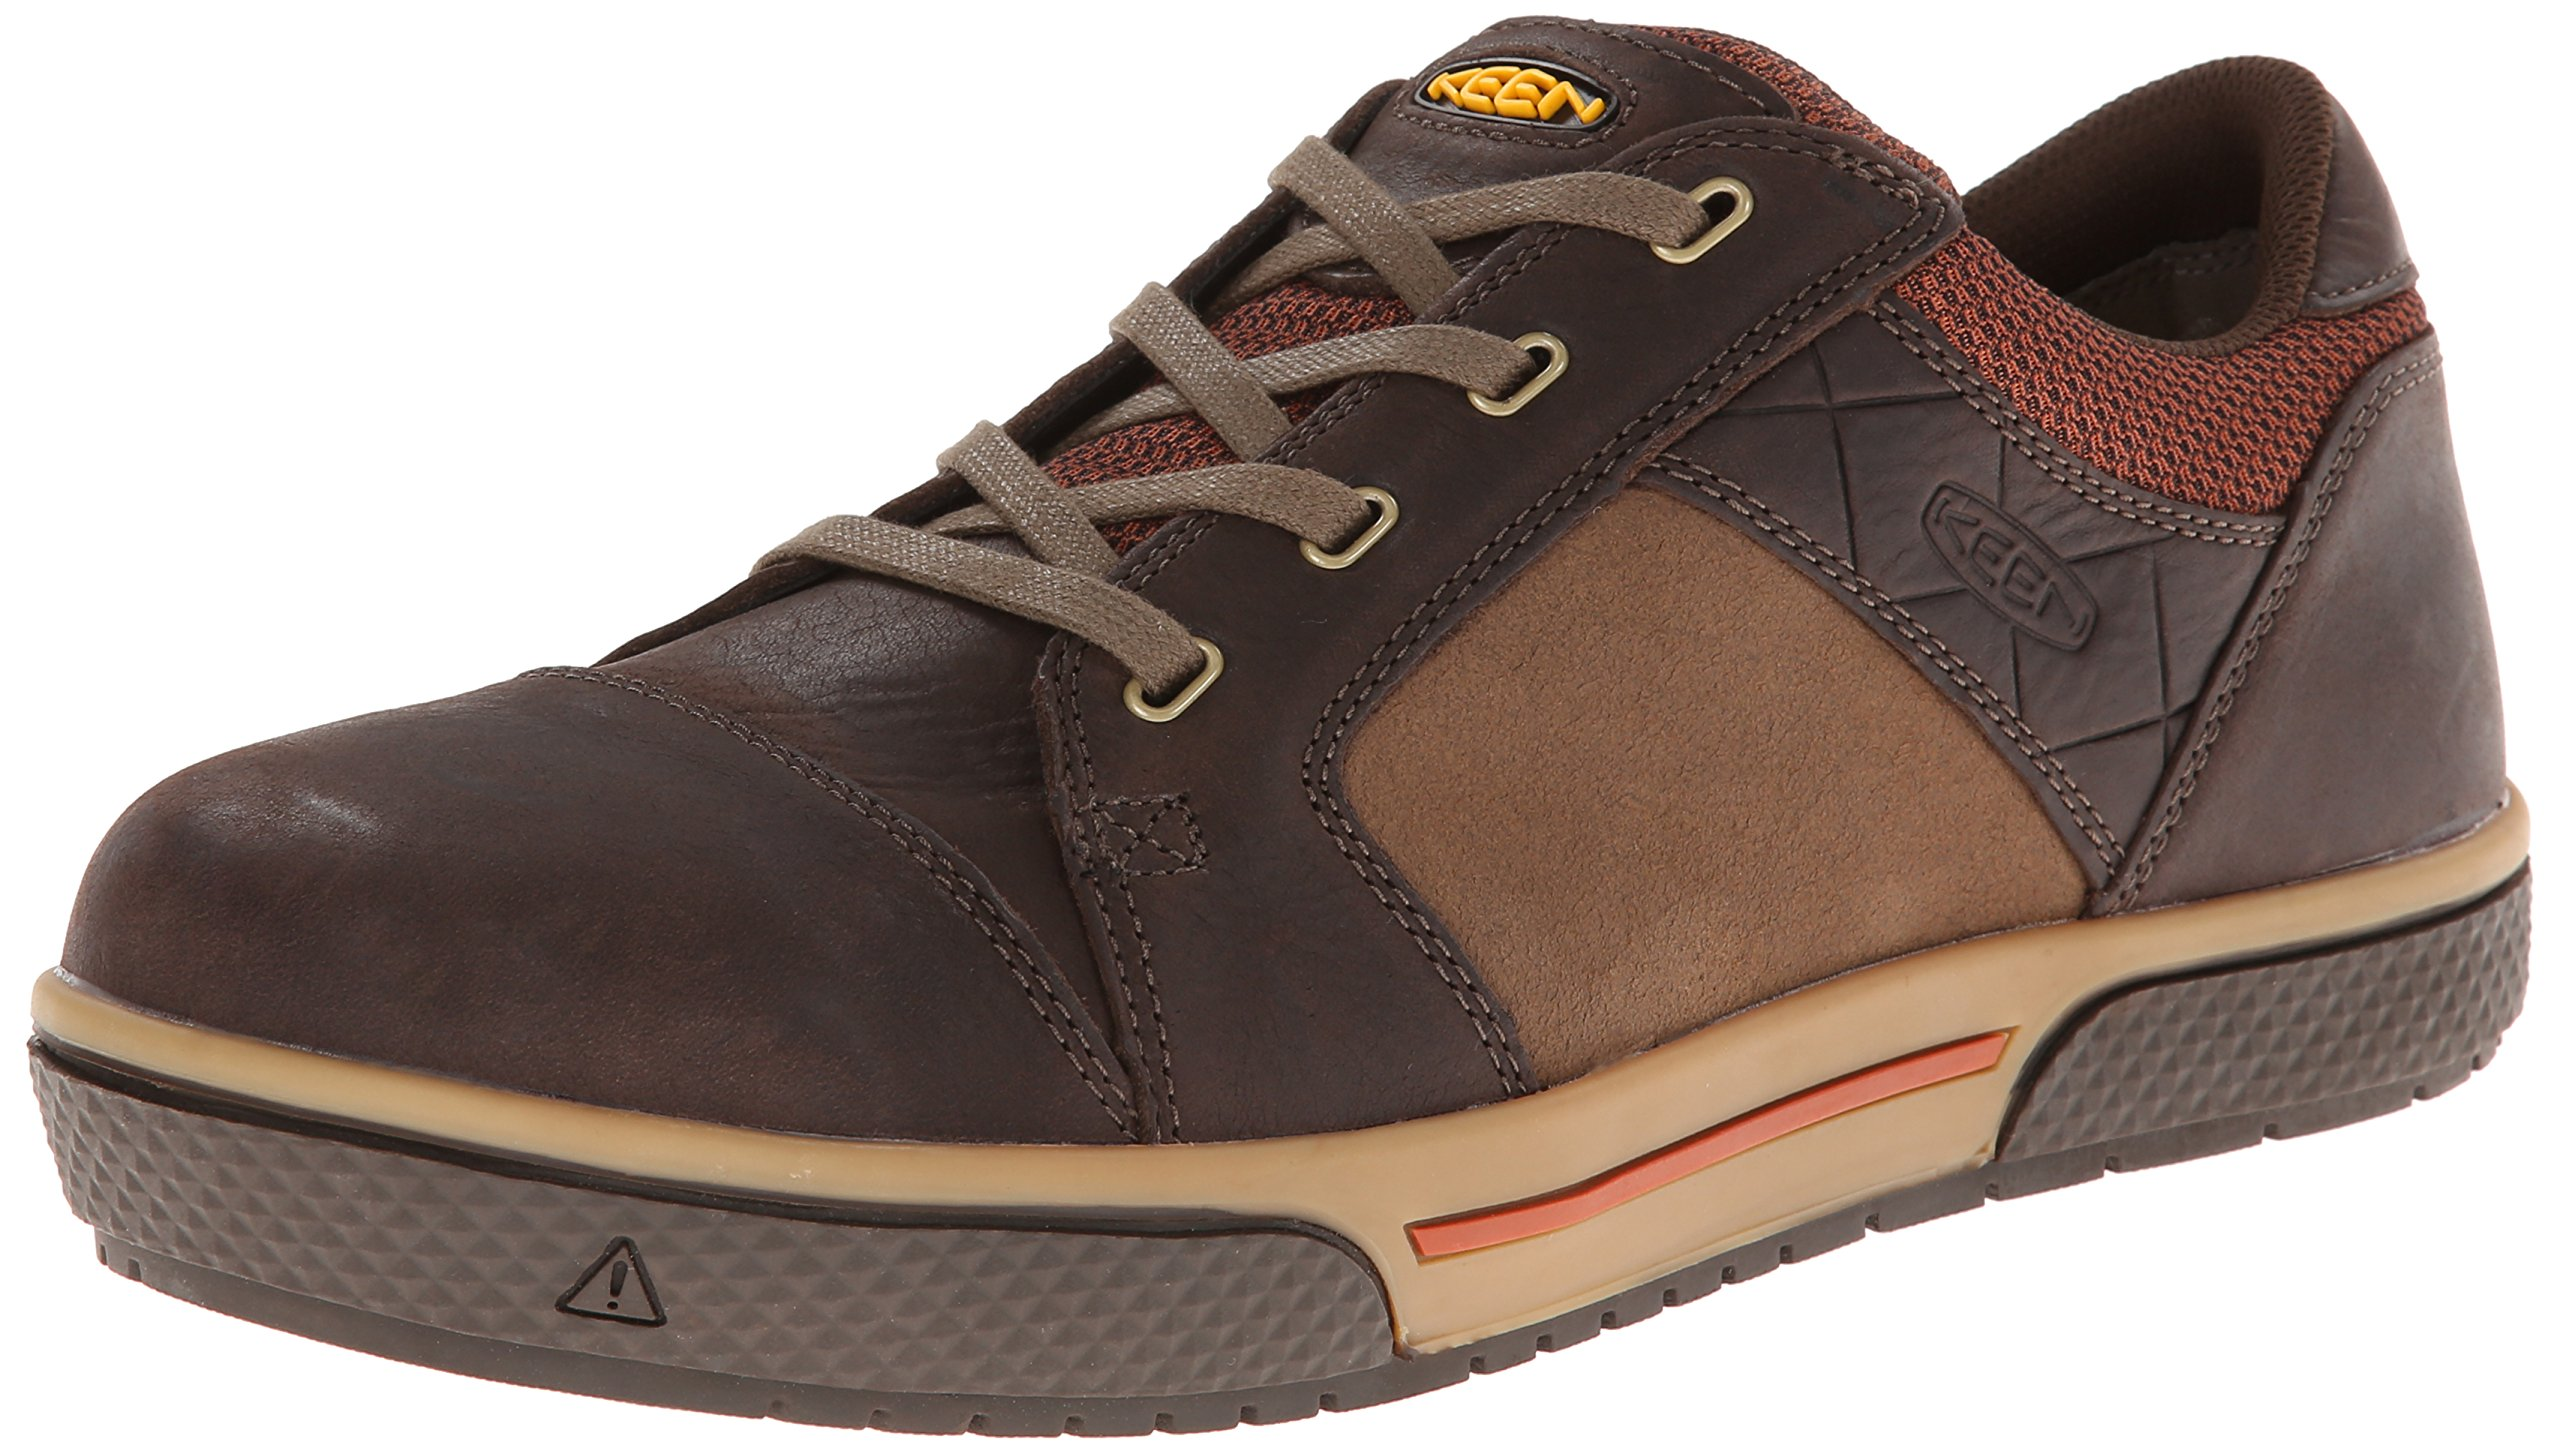 KEEN Utility Men's Destin Low Steel Toe Shoe,Cascade Brown/Bombay Brown,10.5 D US